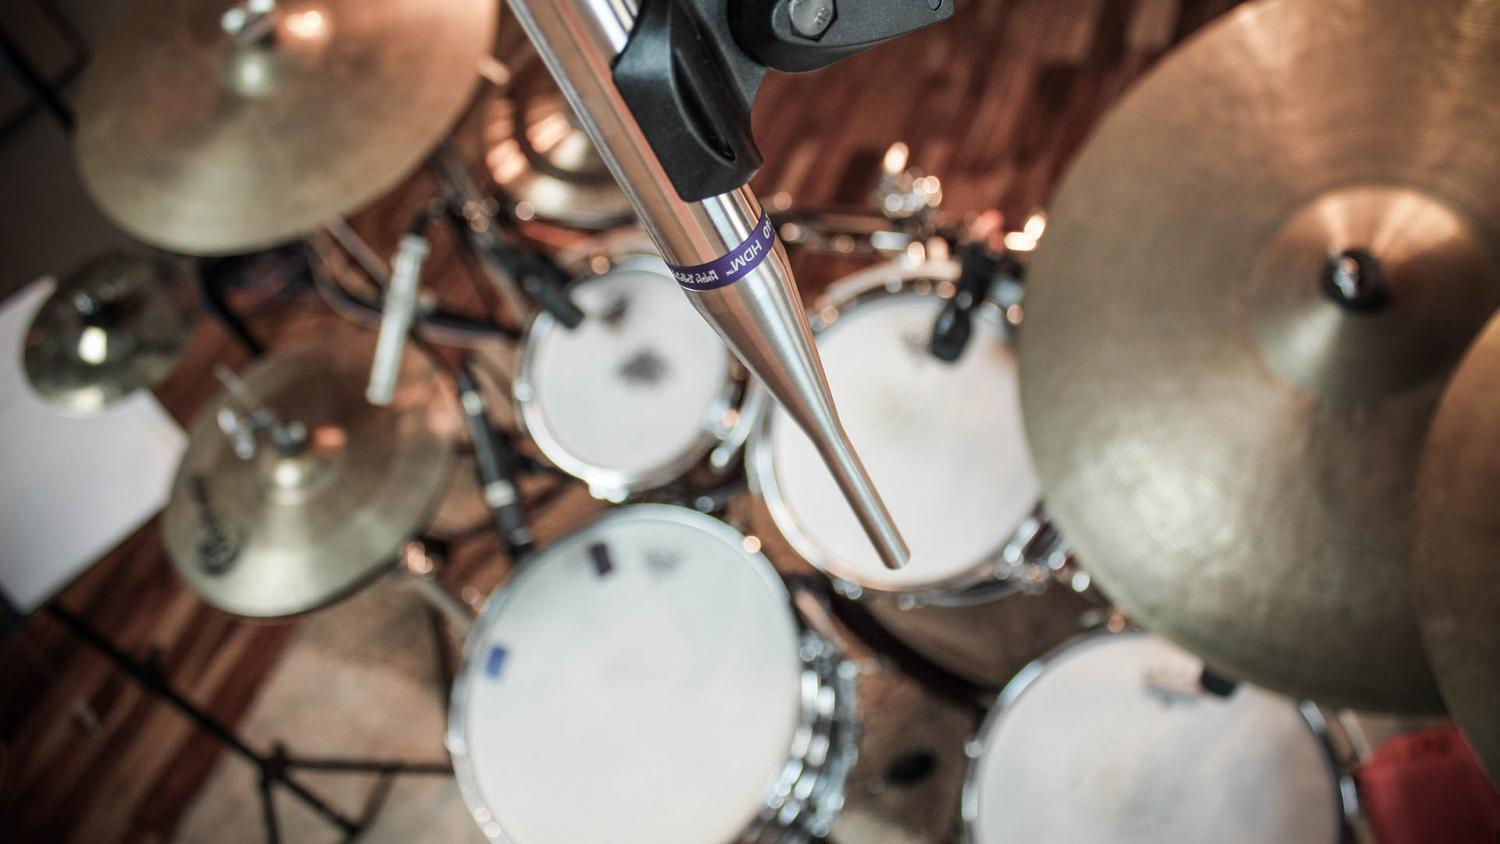 High quality omni mics are placed over acoustic drums to capture them as authentically as possible